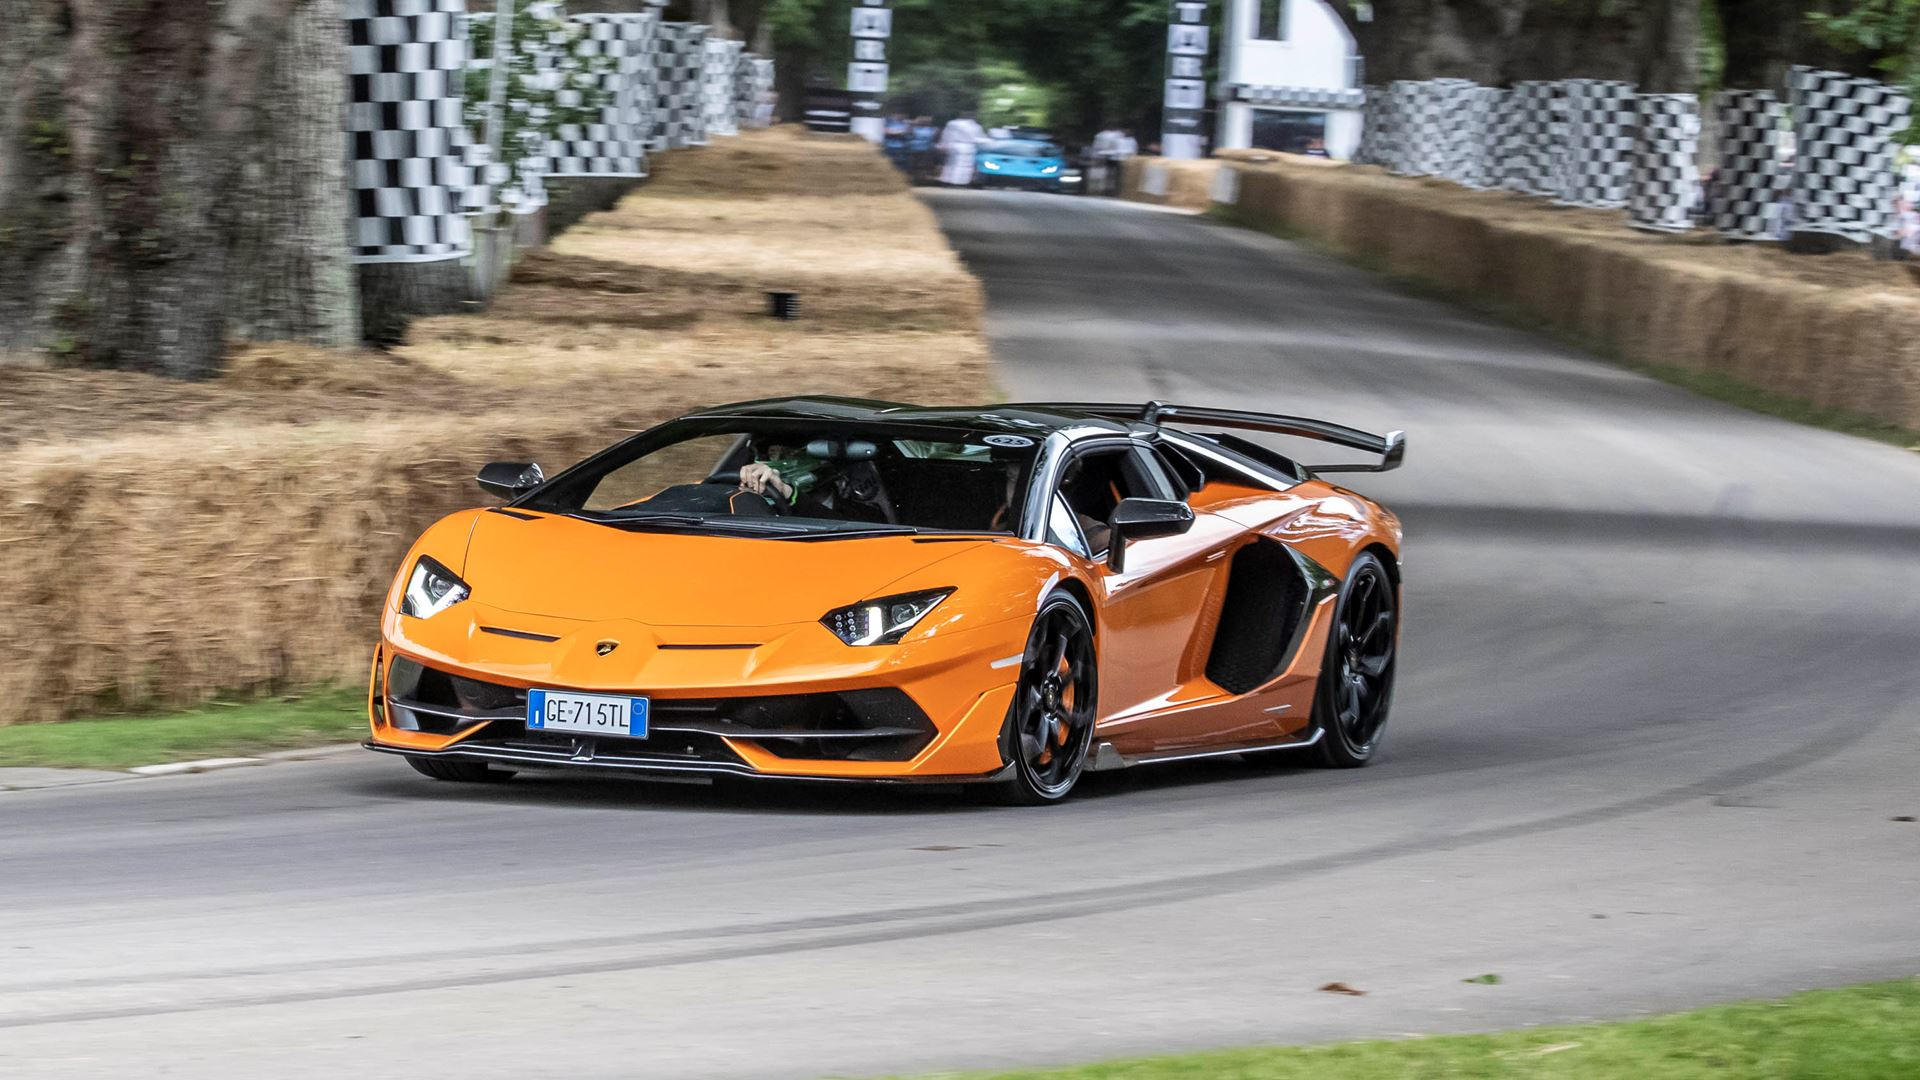 Automobili Lamborghini celebrates V12 and its Squadra Corse motorsport prowess on road and track, at Goodwood Festival of Speed 2021 - Image 2